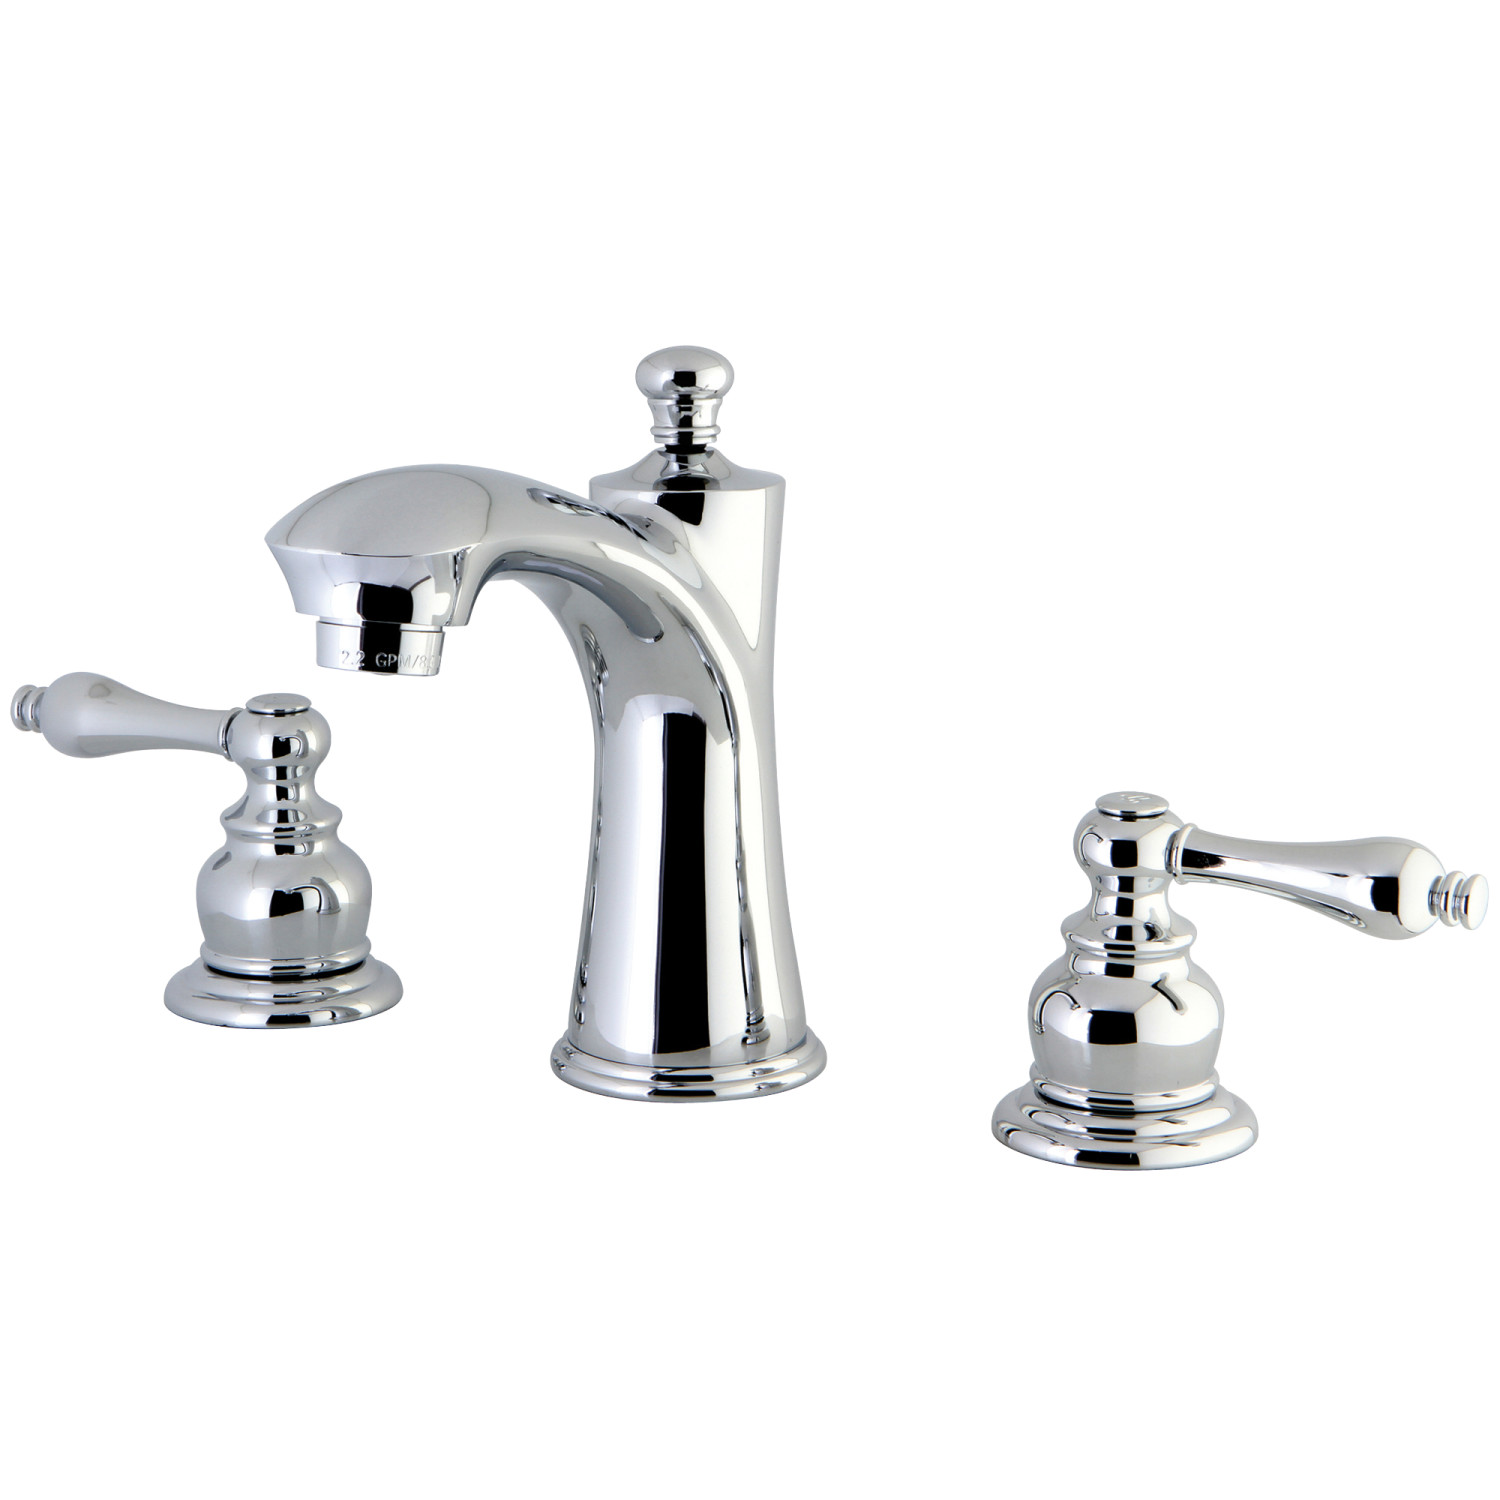 Traditional 2-Handle 3-Hole Deck Mounted Widespread Bathroom Faucet with Plastic Pop-Up in Polished Chrome with 3 Finish Options